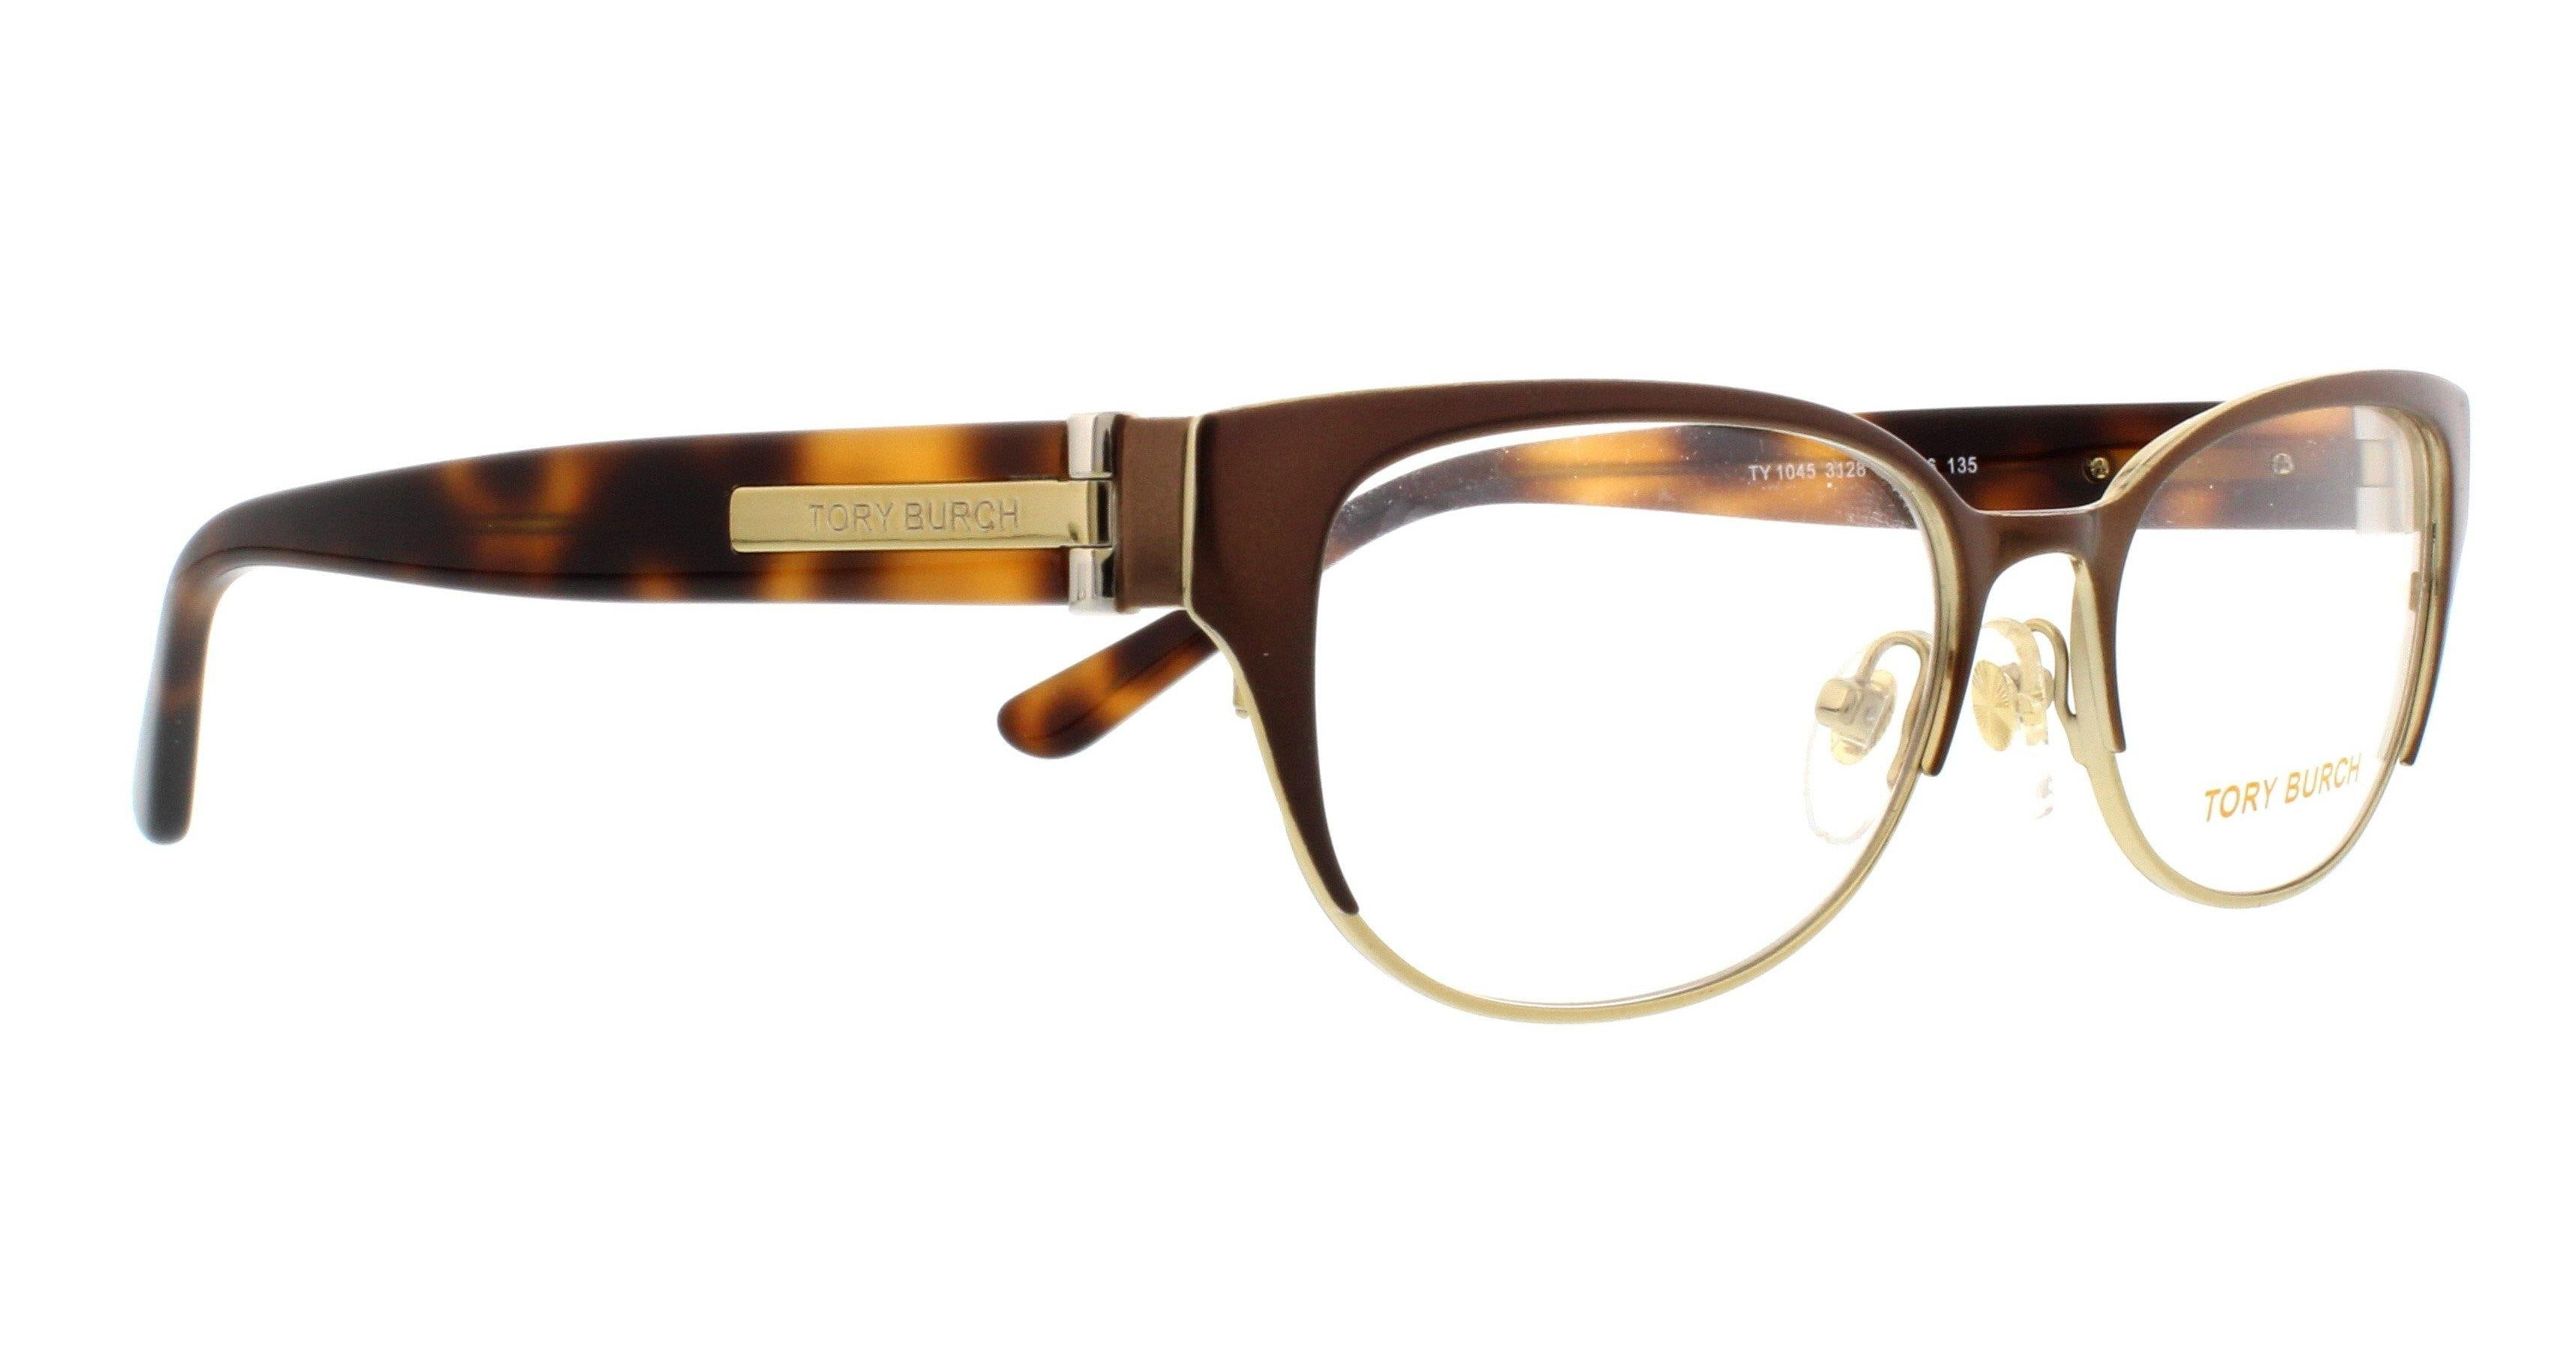 Tory Burch Eyeglasses TY1045 3128 Rx-ABLE